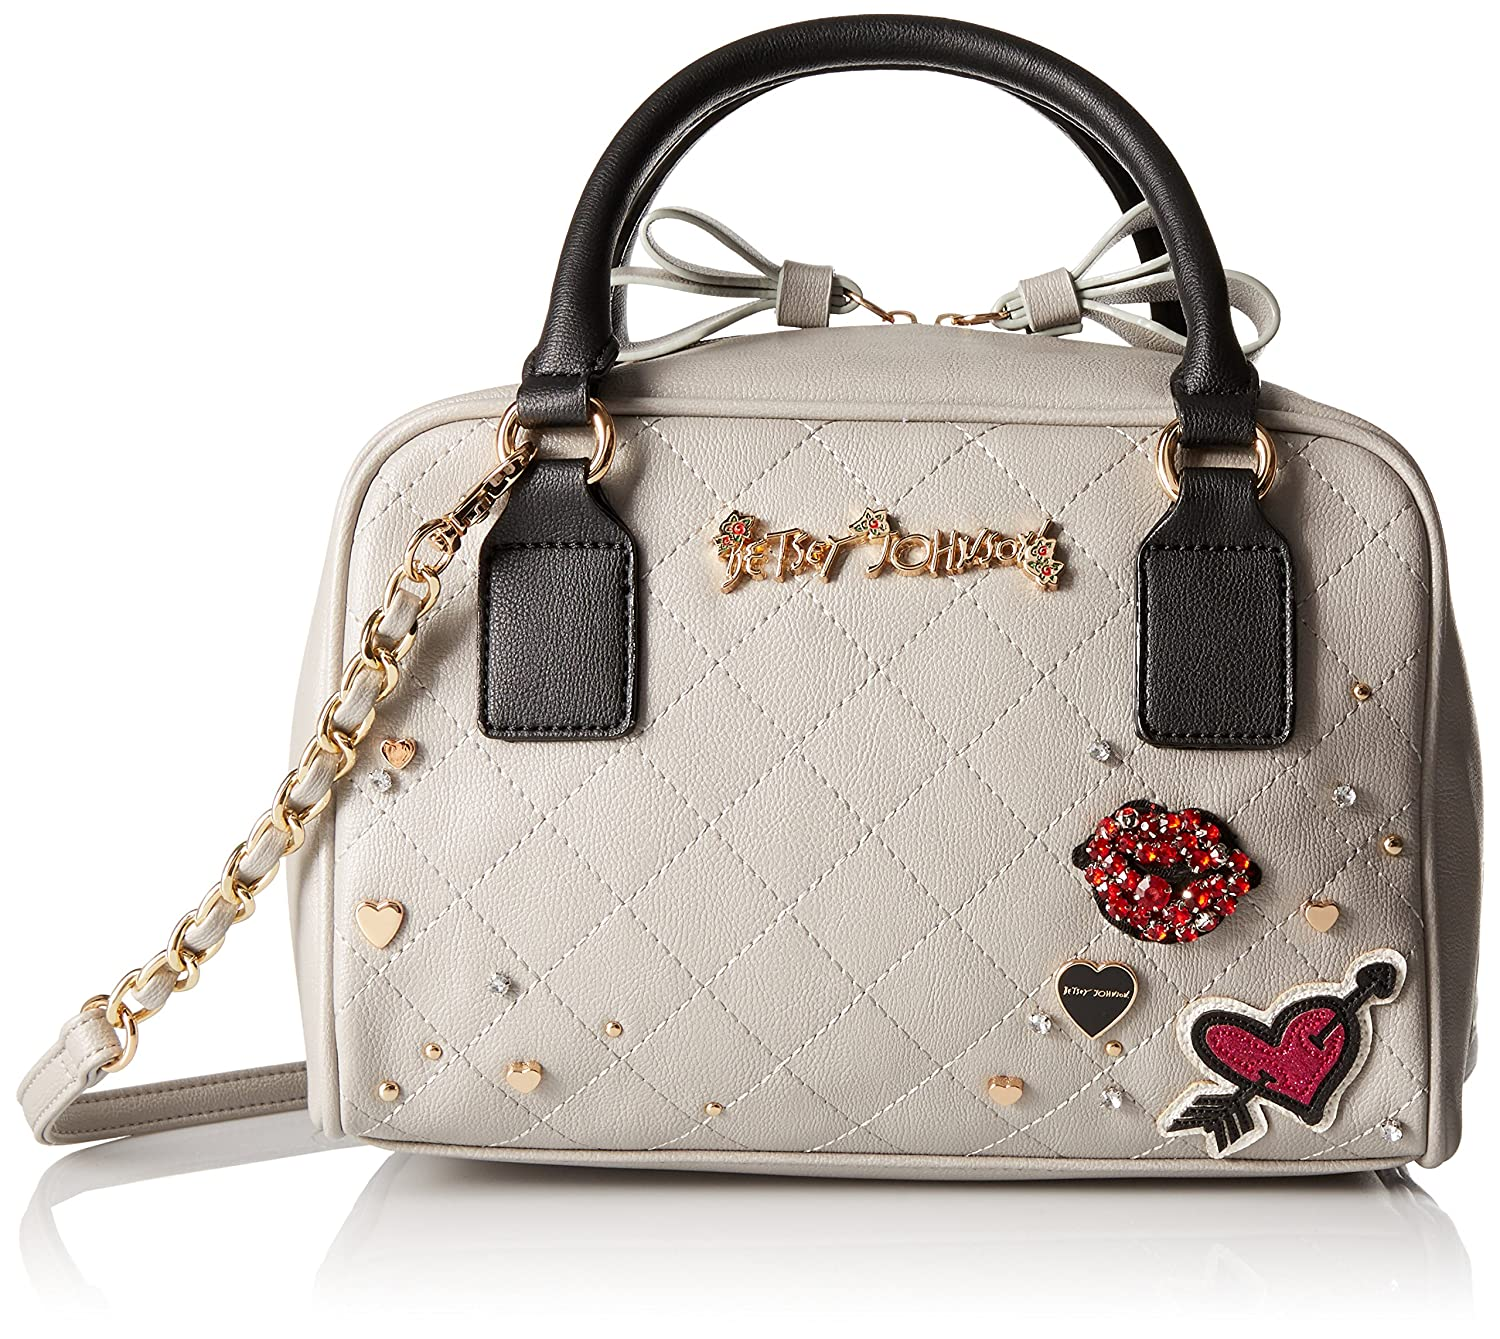 Betsey Johnson Peek-A-Boo Top Handle Handbag